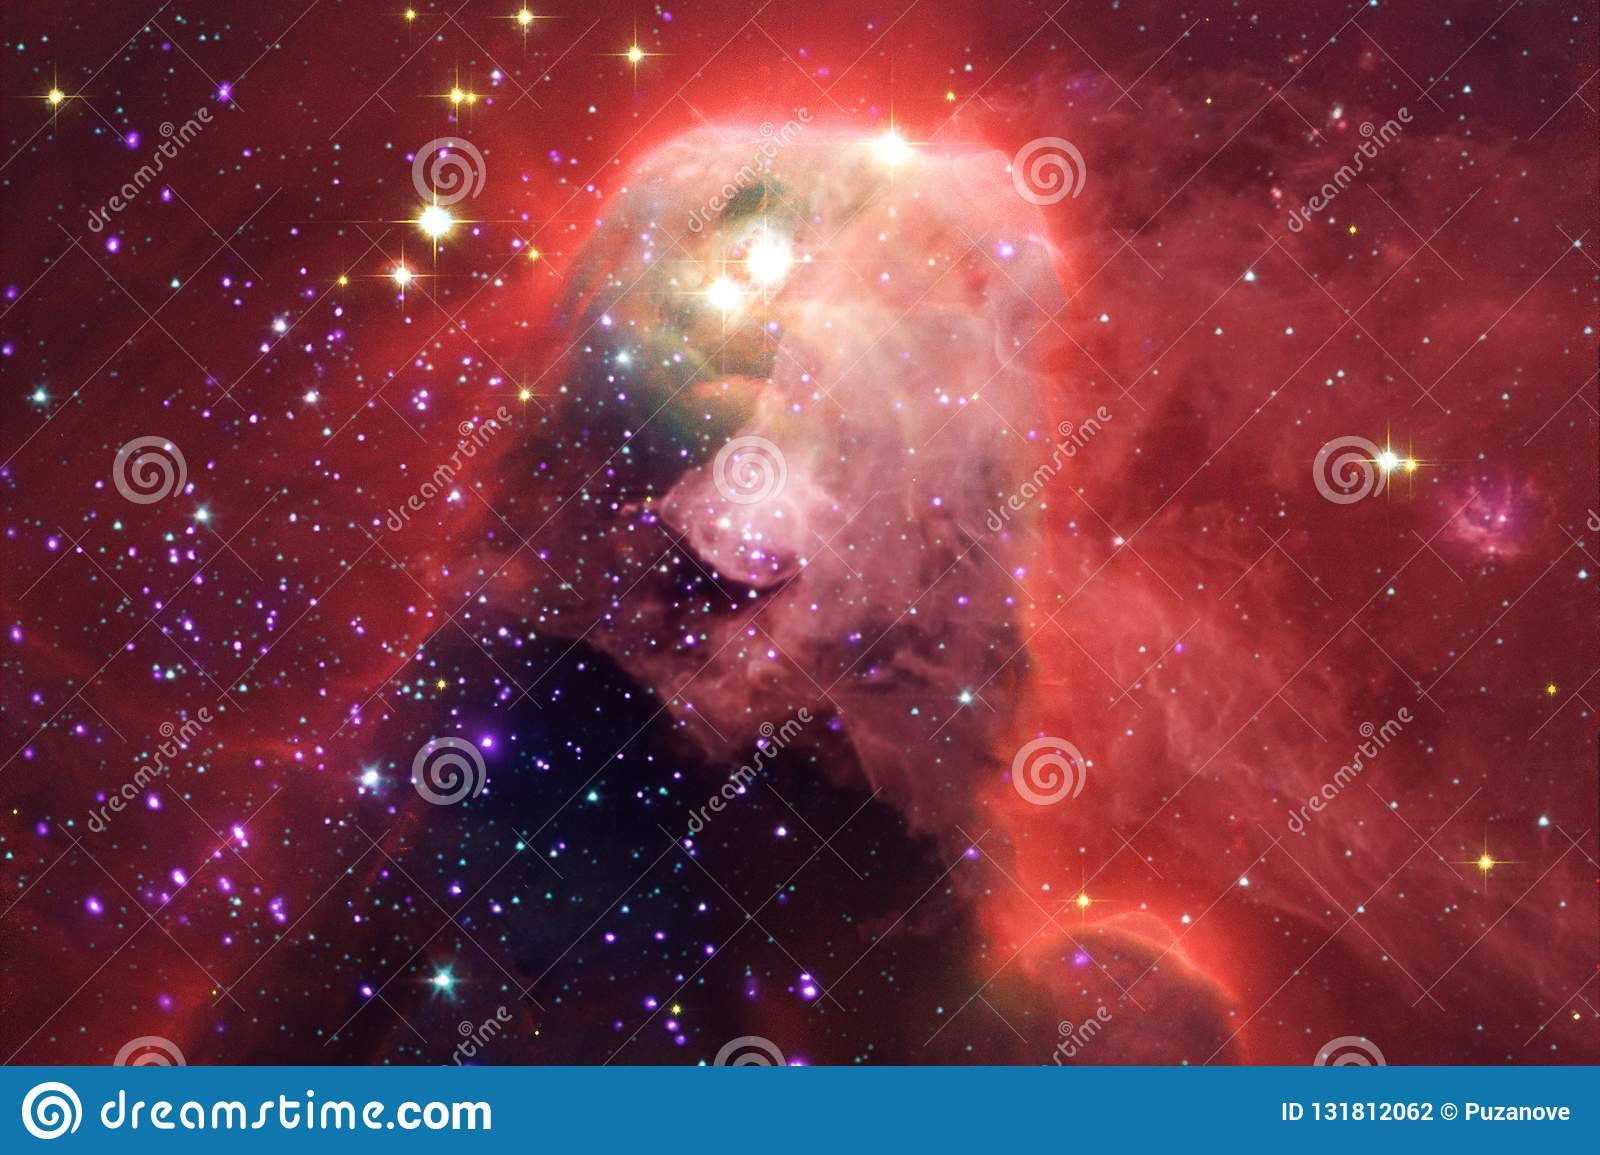 deep space science fiction fantasy high resolution ideal wallpaper deep space science fiction fantasy high resolution 131812062